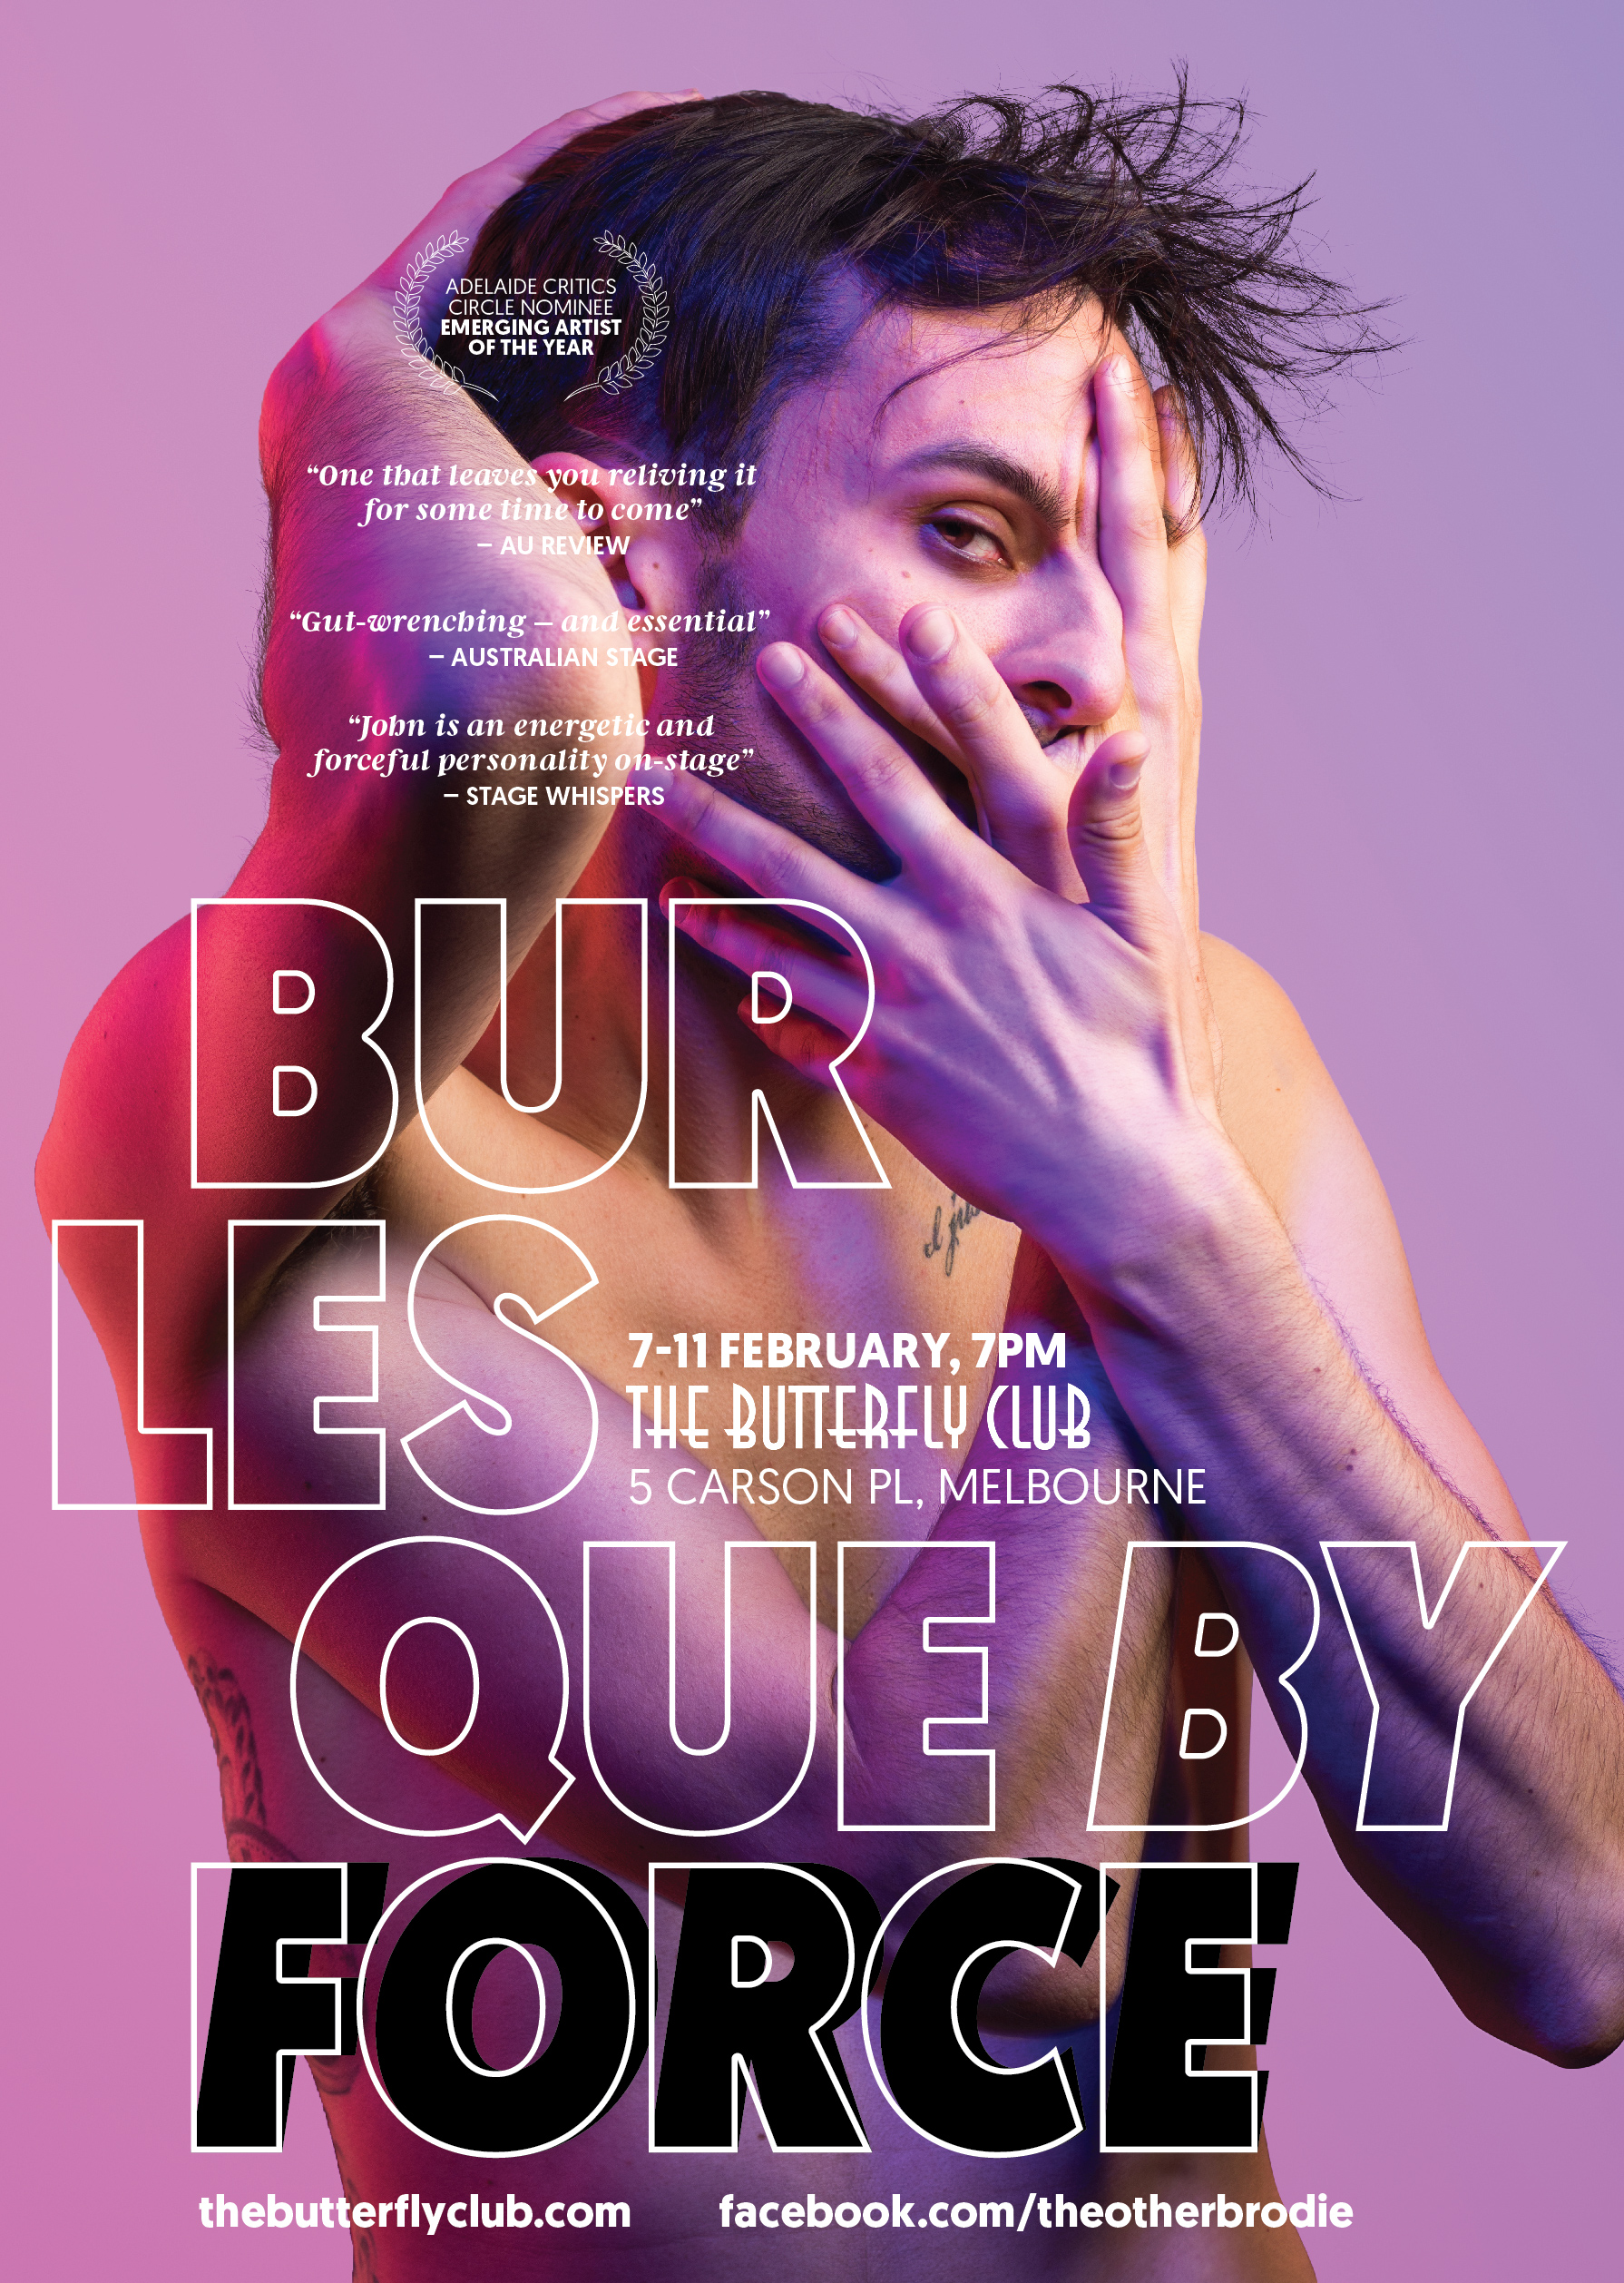 Burlesque by Force poster_v1 Melbourne-09.jpg